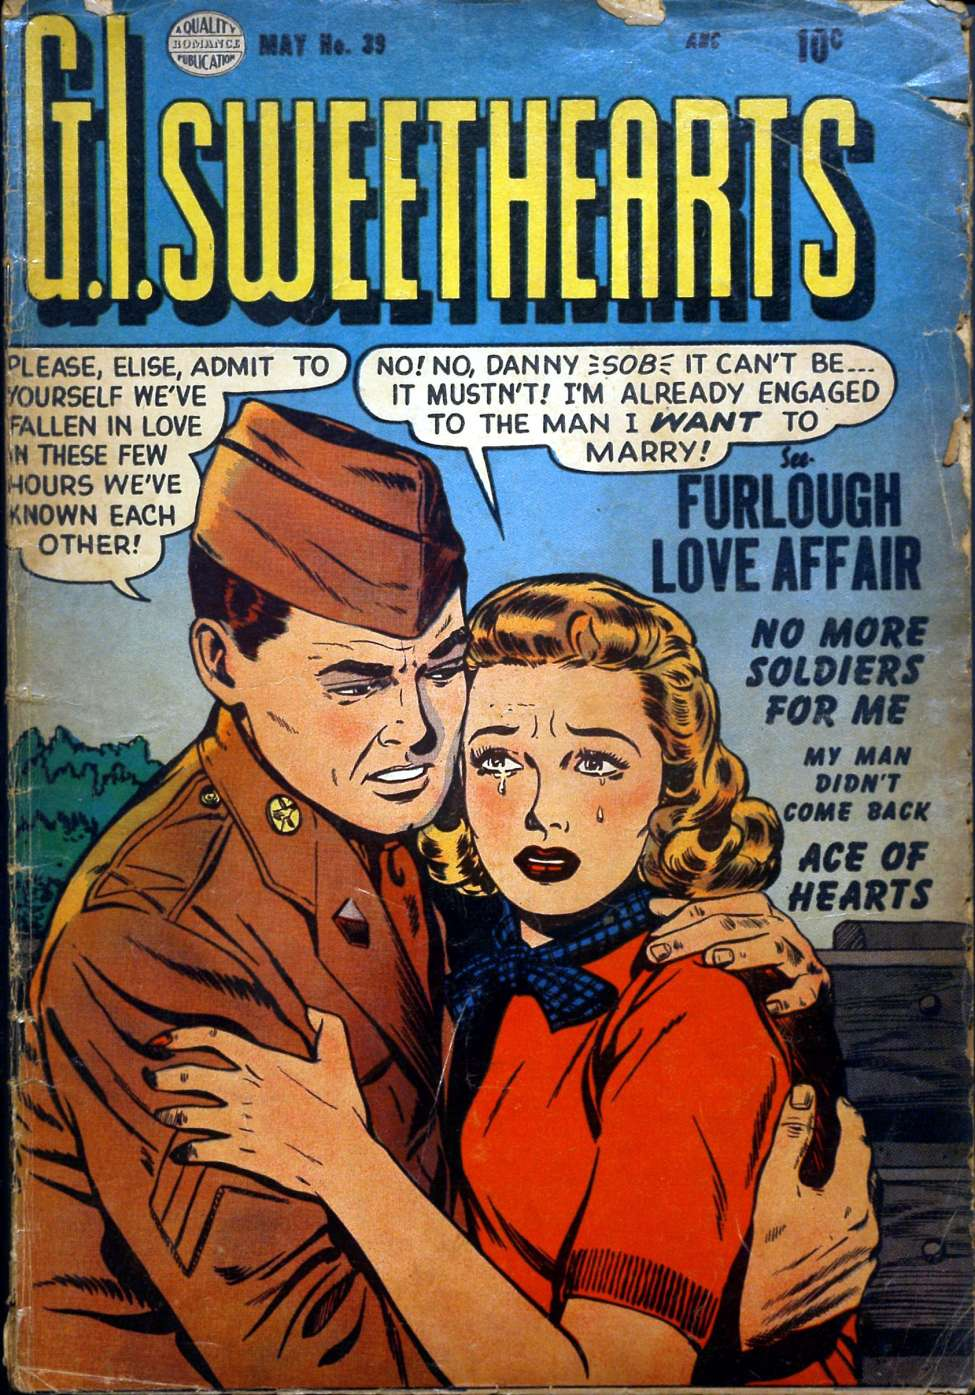 Comic Book Cover For G.I. Sweethearts #39